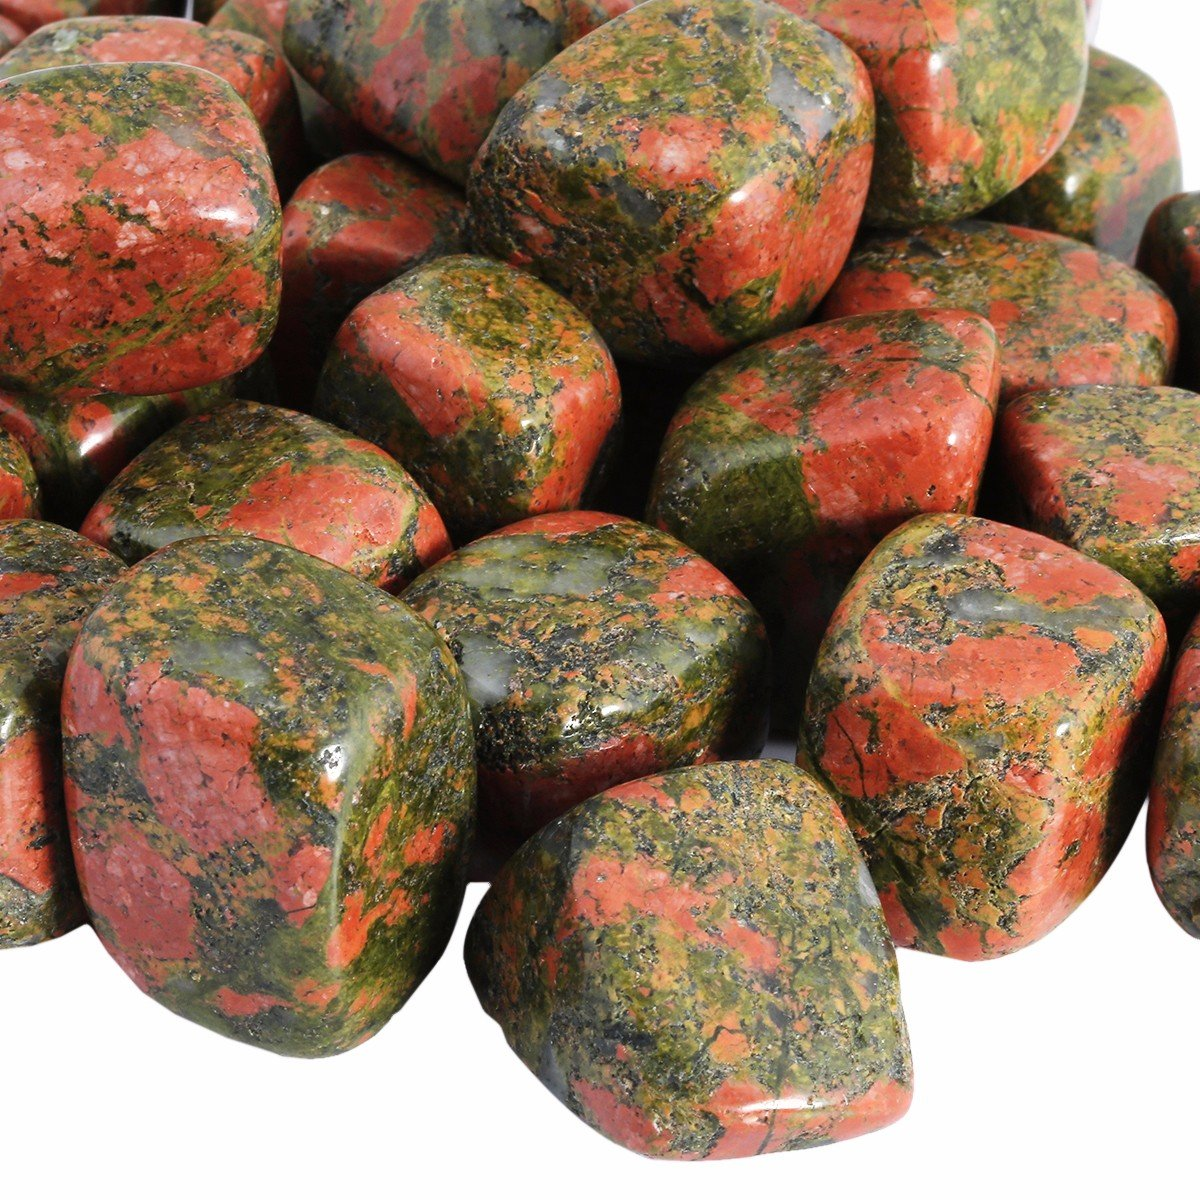 rockcloud 1 lb Tumbled Polished Stones Gemstone Supplies for Wicca,Reiki,Healing Crystal,Assorted Stones RCZ0009219